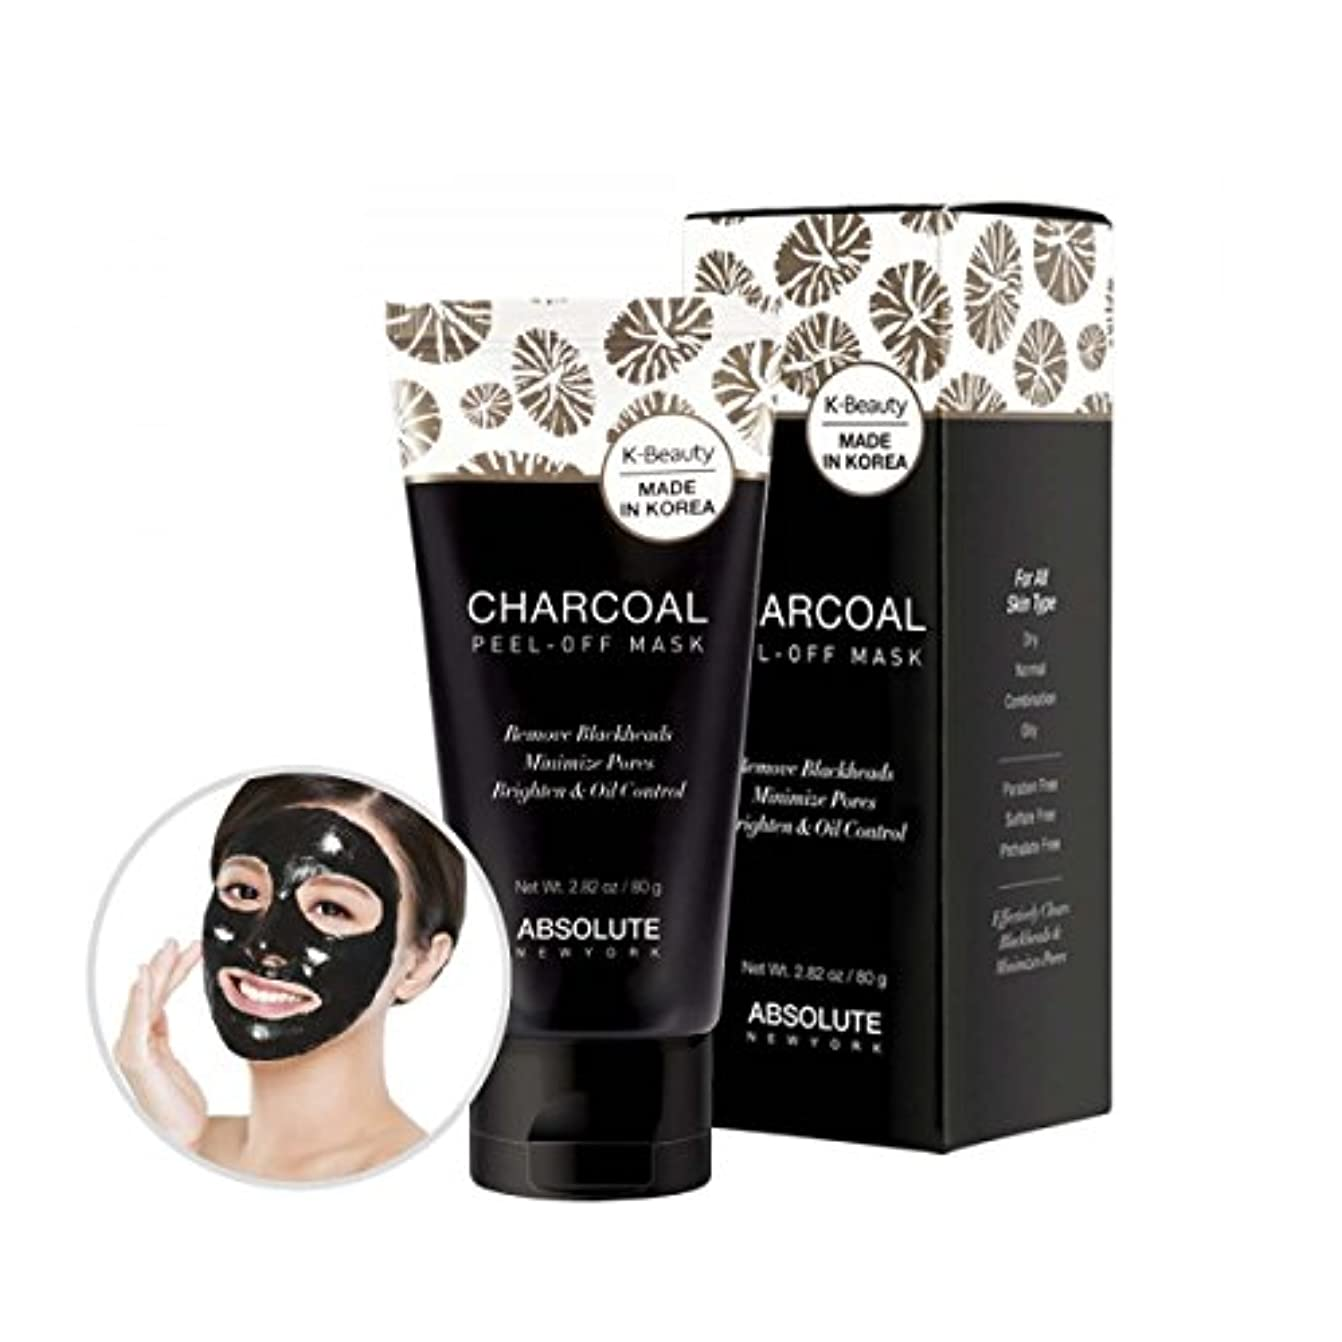 敬収入腹部ABSOLUTE Charcoal Peel-Off Mask (並行輸入品)